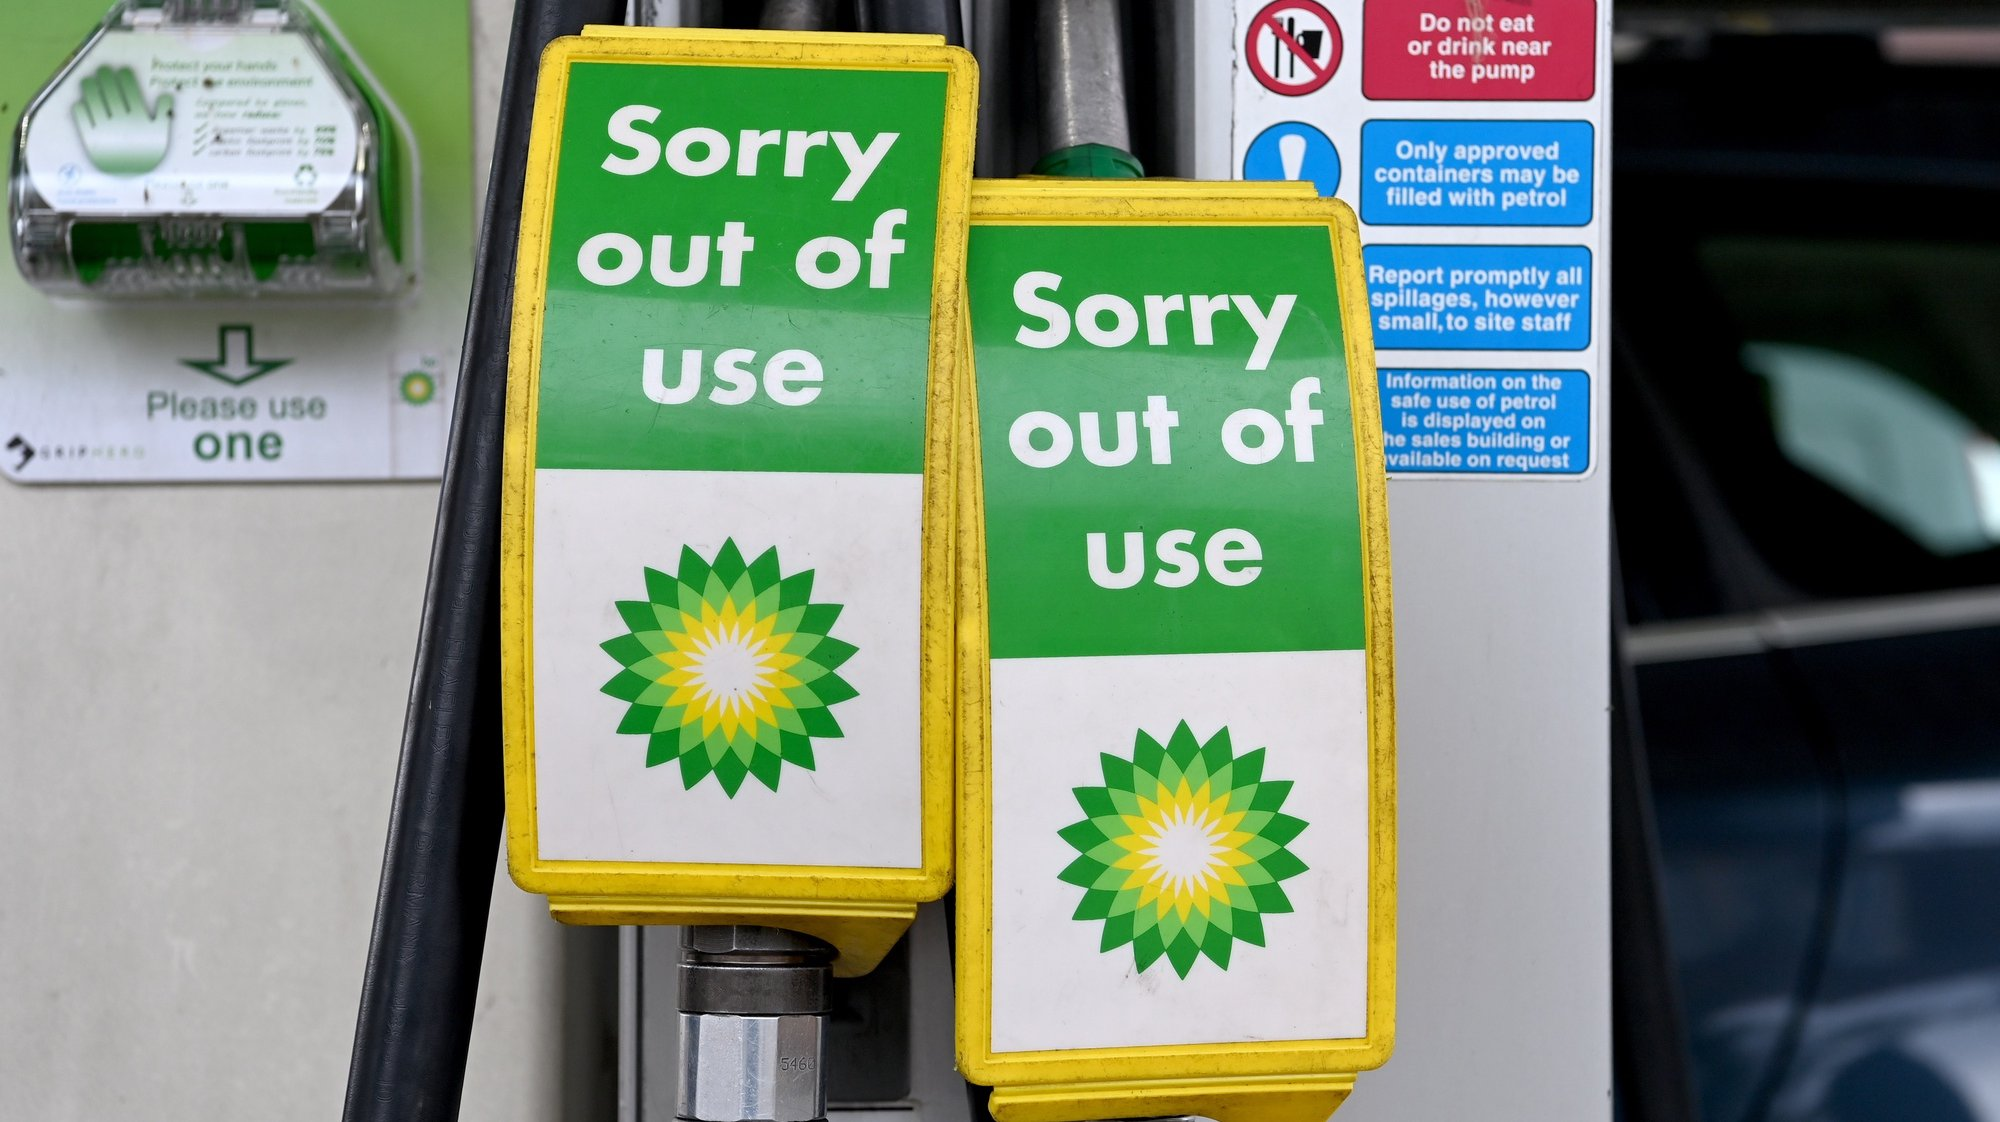 epa09484821 A BP petrol station is pictured in London, Britain, 24 September 2021. A small number of BP petrol stations are closed due to problems with transporting the fuel from refineries amid the nationwide scarcity of truck drivers in the UK.  EPA/FACUNDO ARRIZABALAGA